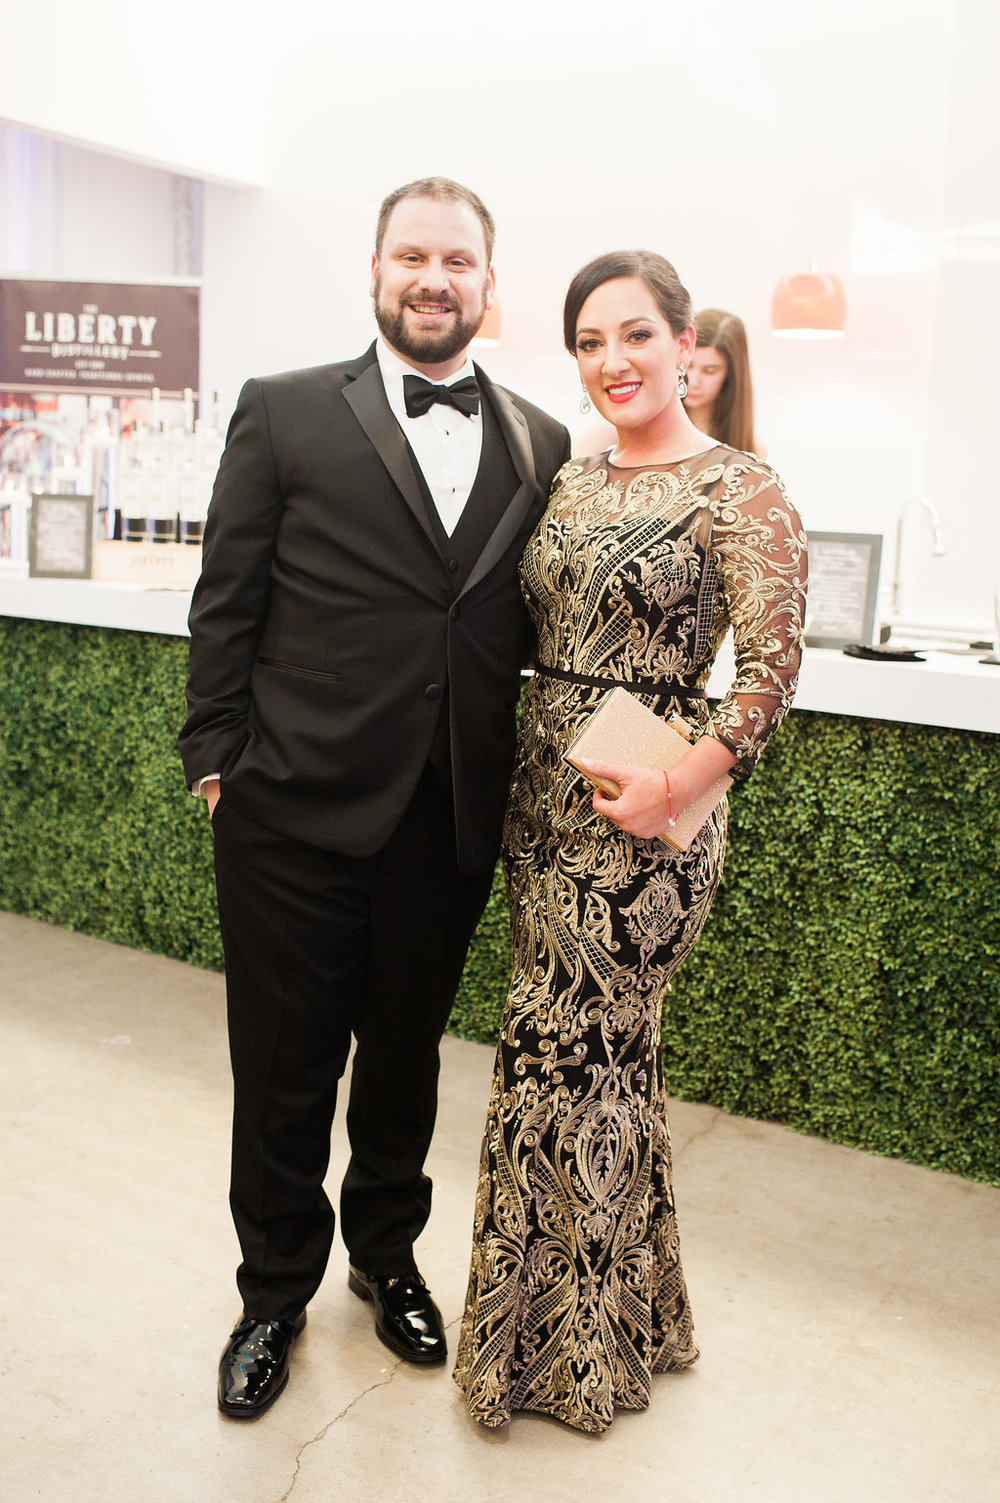 jess and luis belluxe.jpg